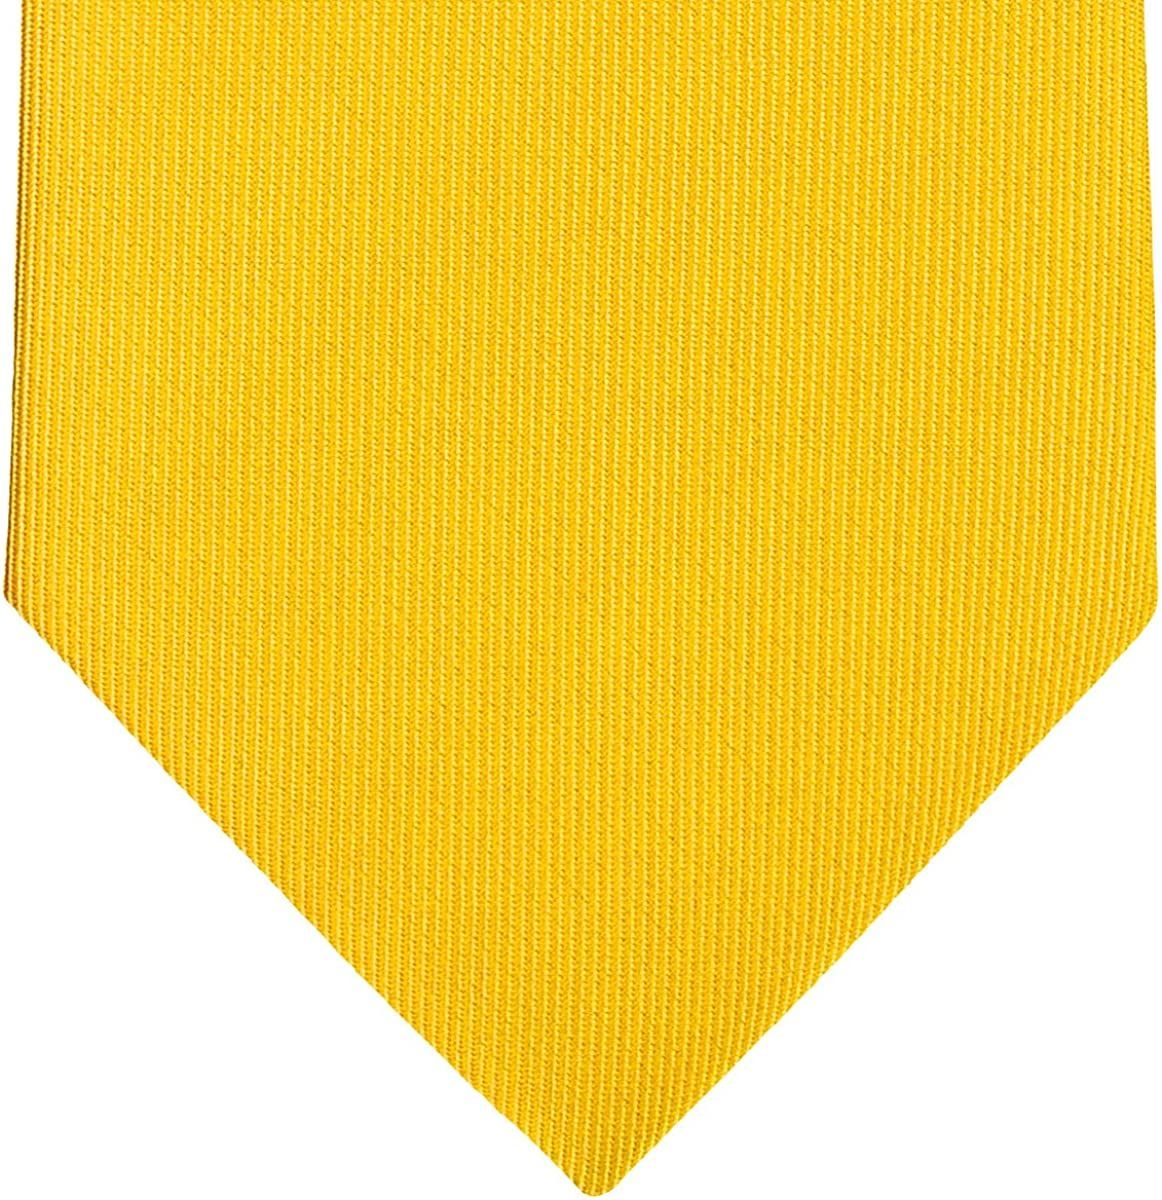 8-10 years Retreez Solid Plain Color with Stripe Textured Woven Boys Tie